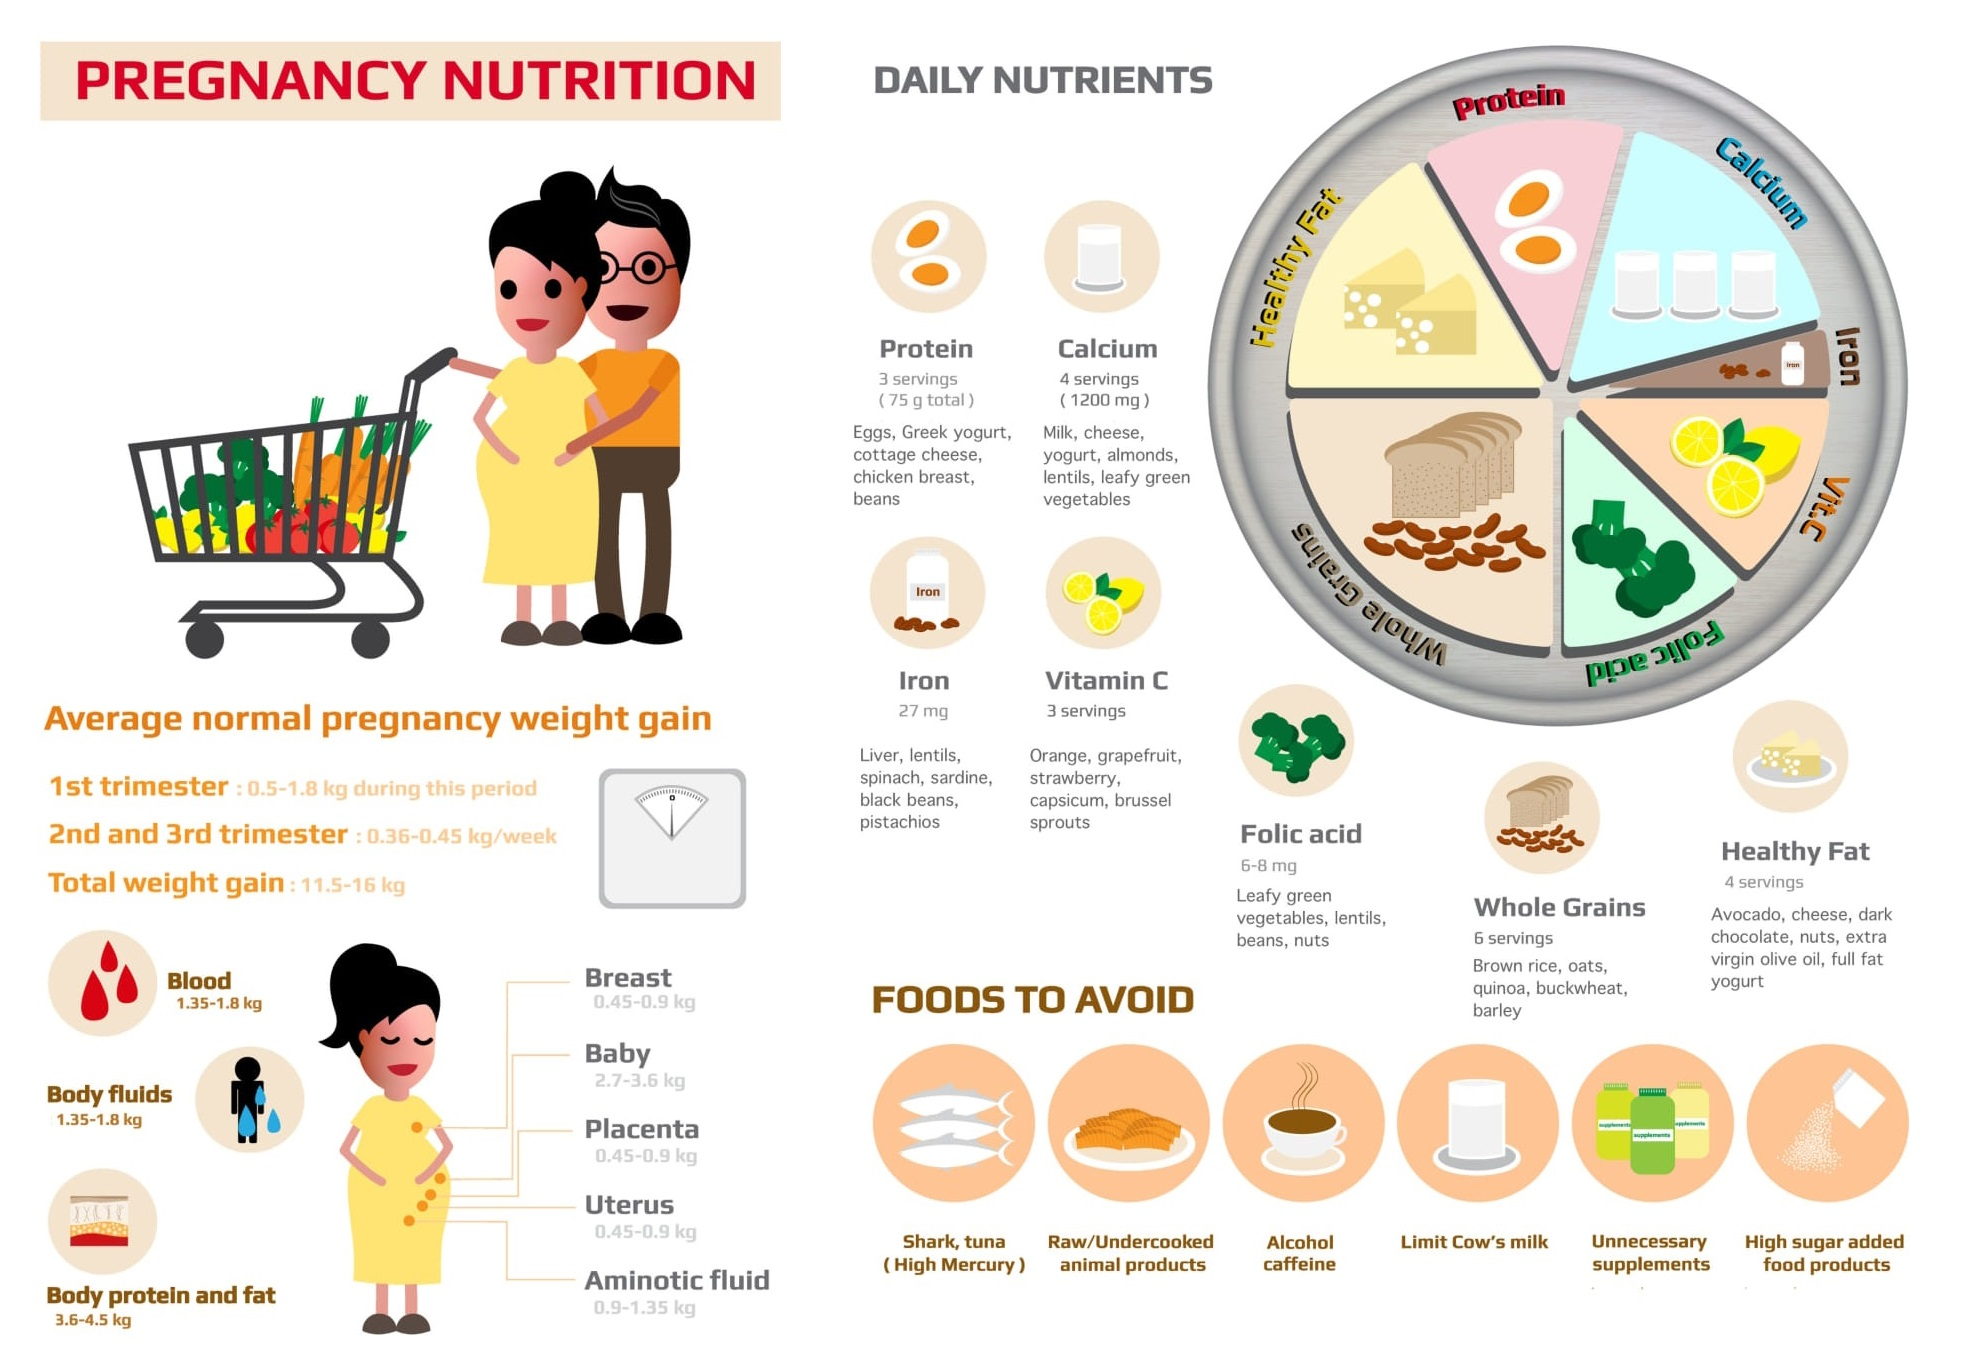 Pregnancy Nutrition: 7 daily nutrient during pregnancy. Food to avoid during pregnancy and average weight gain during pregnancy.